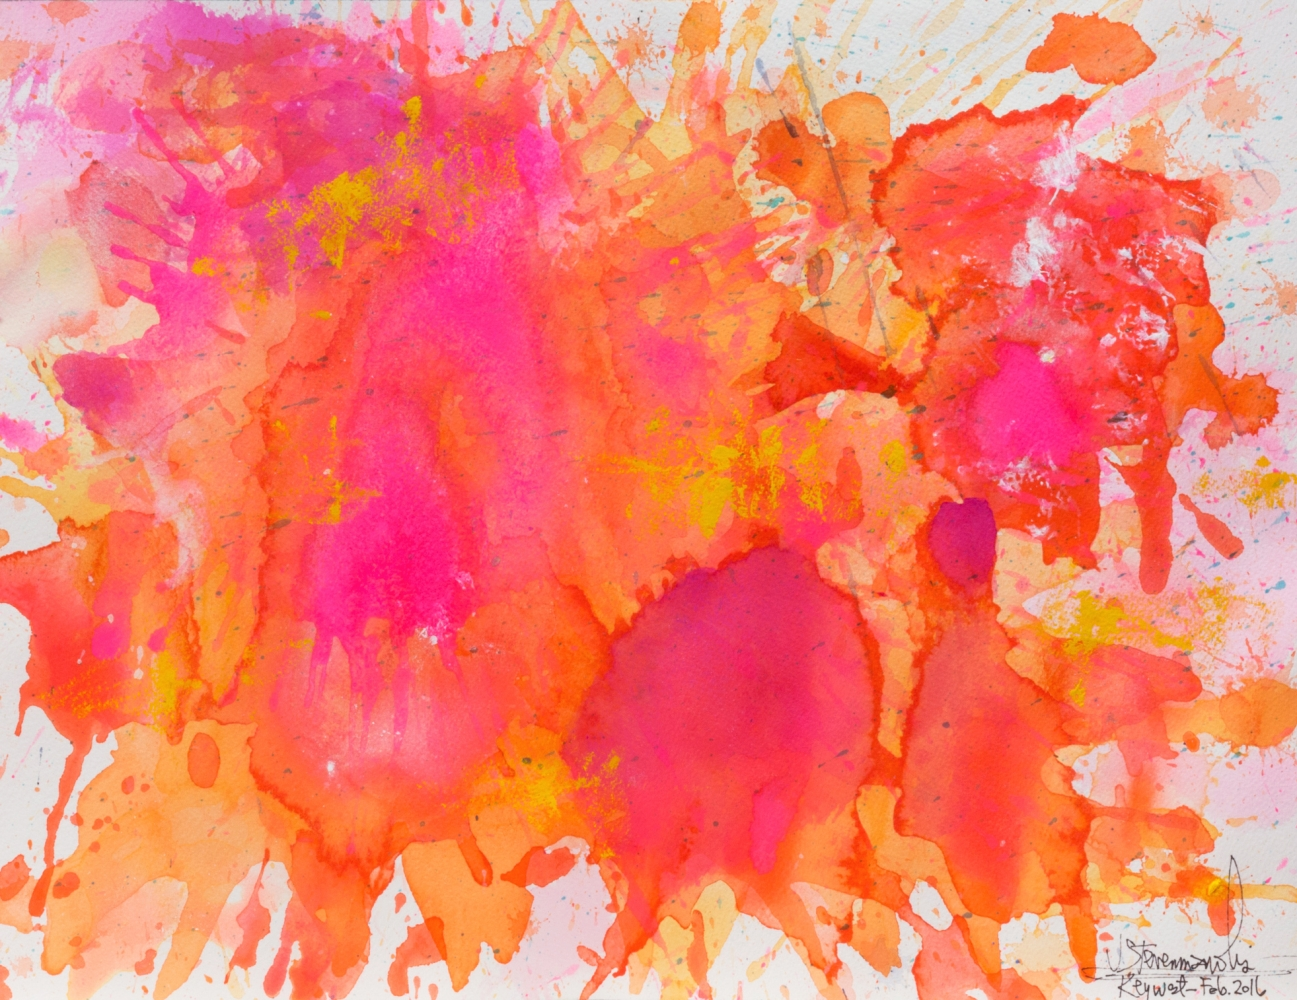 J. Steven Manolis, Flamingo-Key West, 1832-2016-1216.06, watercolor, gouache and acrylic painting on Arches paper, 12 x 16 inches, Pink and orange Abstract Art, Tropical Watercolor paintings for sale at Manolis Projects Art Gallery, Miami, Fl